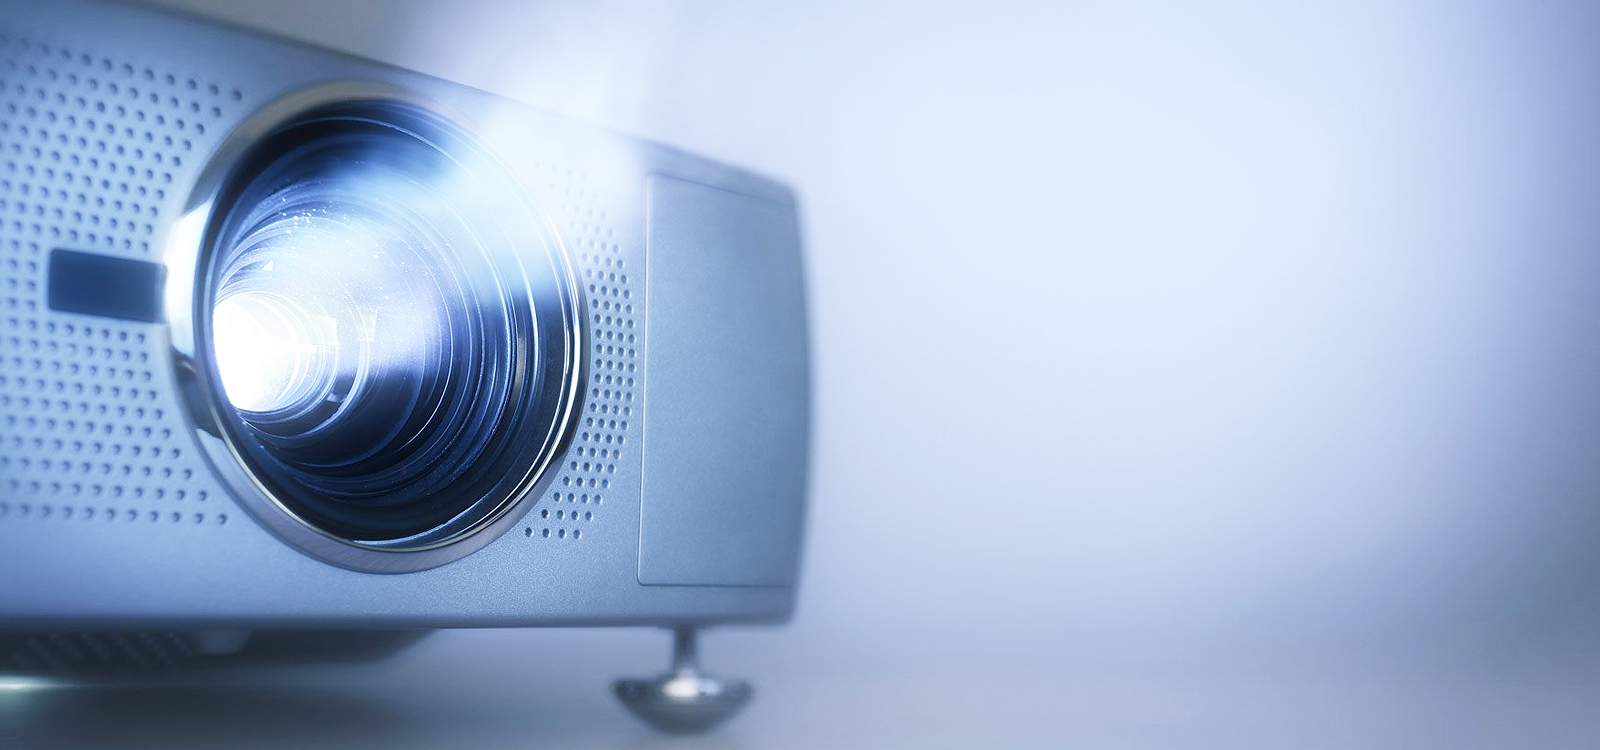 projector on rent in Gurgaon